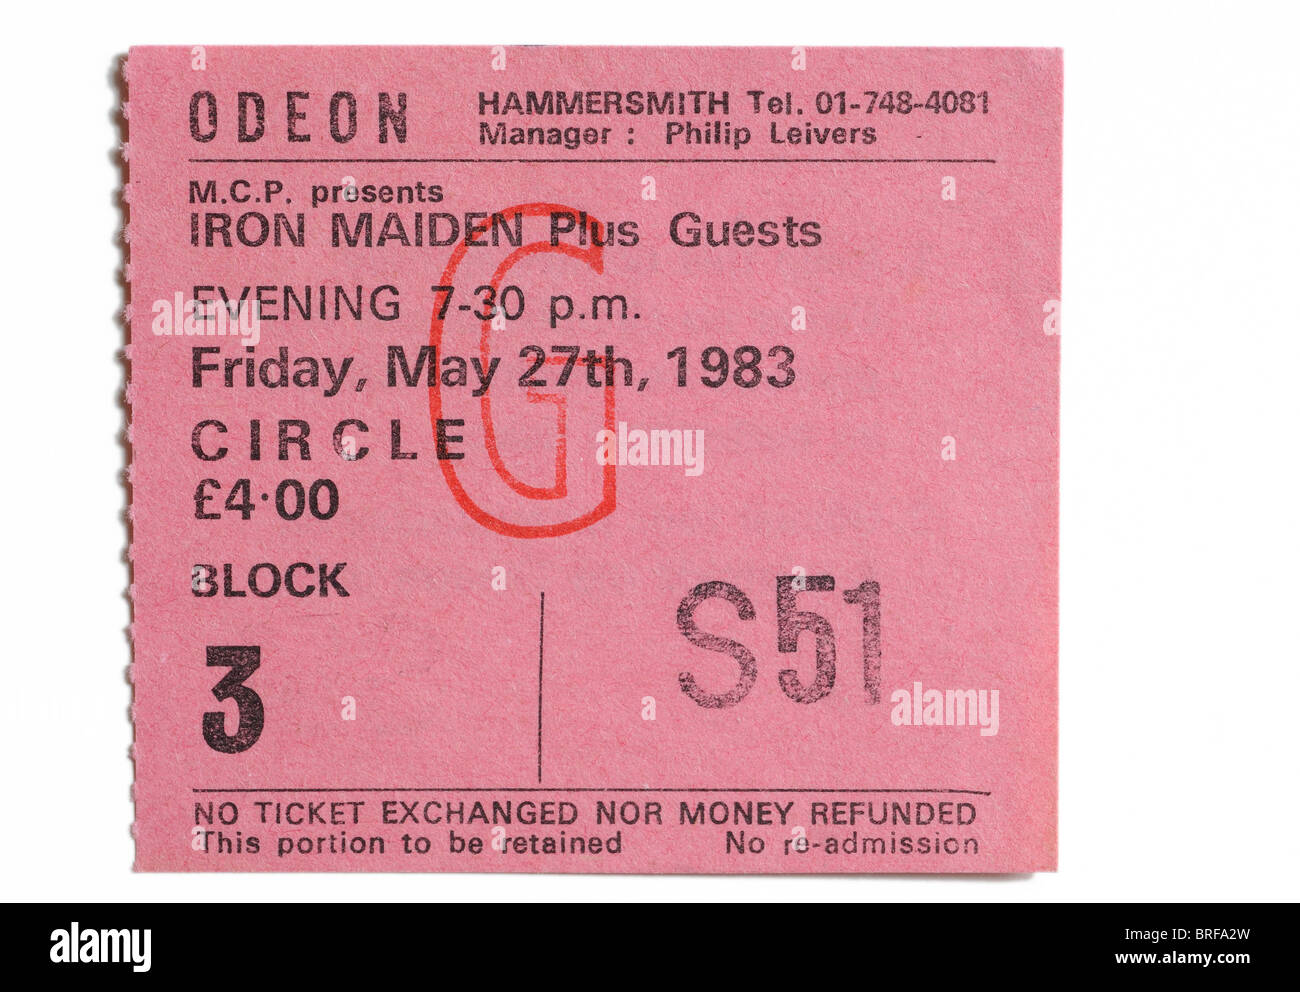 A concert ticket for Iron Maiden at the legendary Hammersmith Odeon - Stock Image